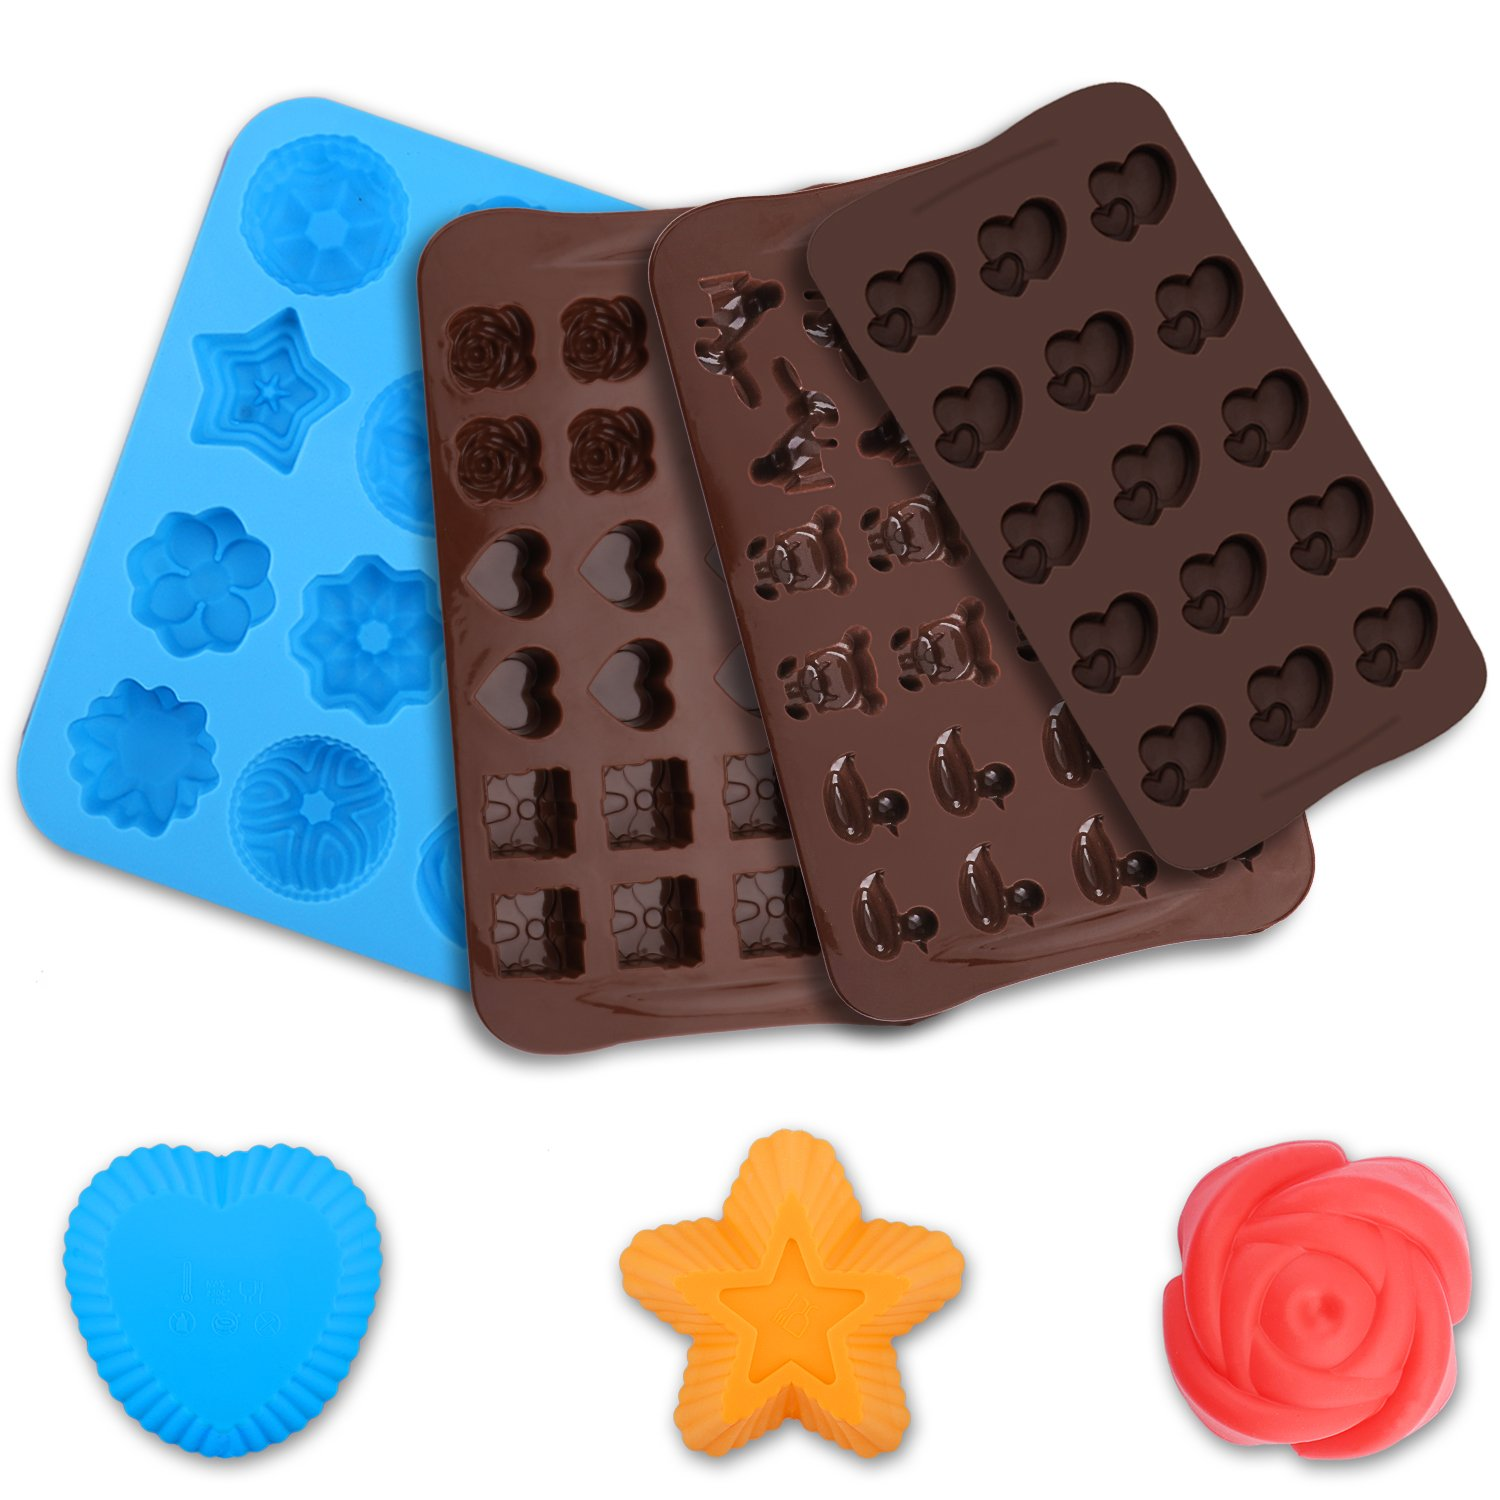 Silicone Molds Silicone Chocolate Molds & Candy Molds 100% FDA Approved, BPA Free, Vitamin (7PCS)